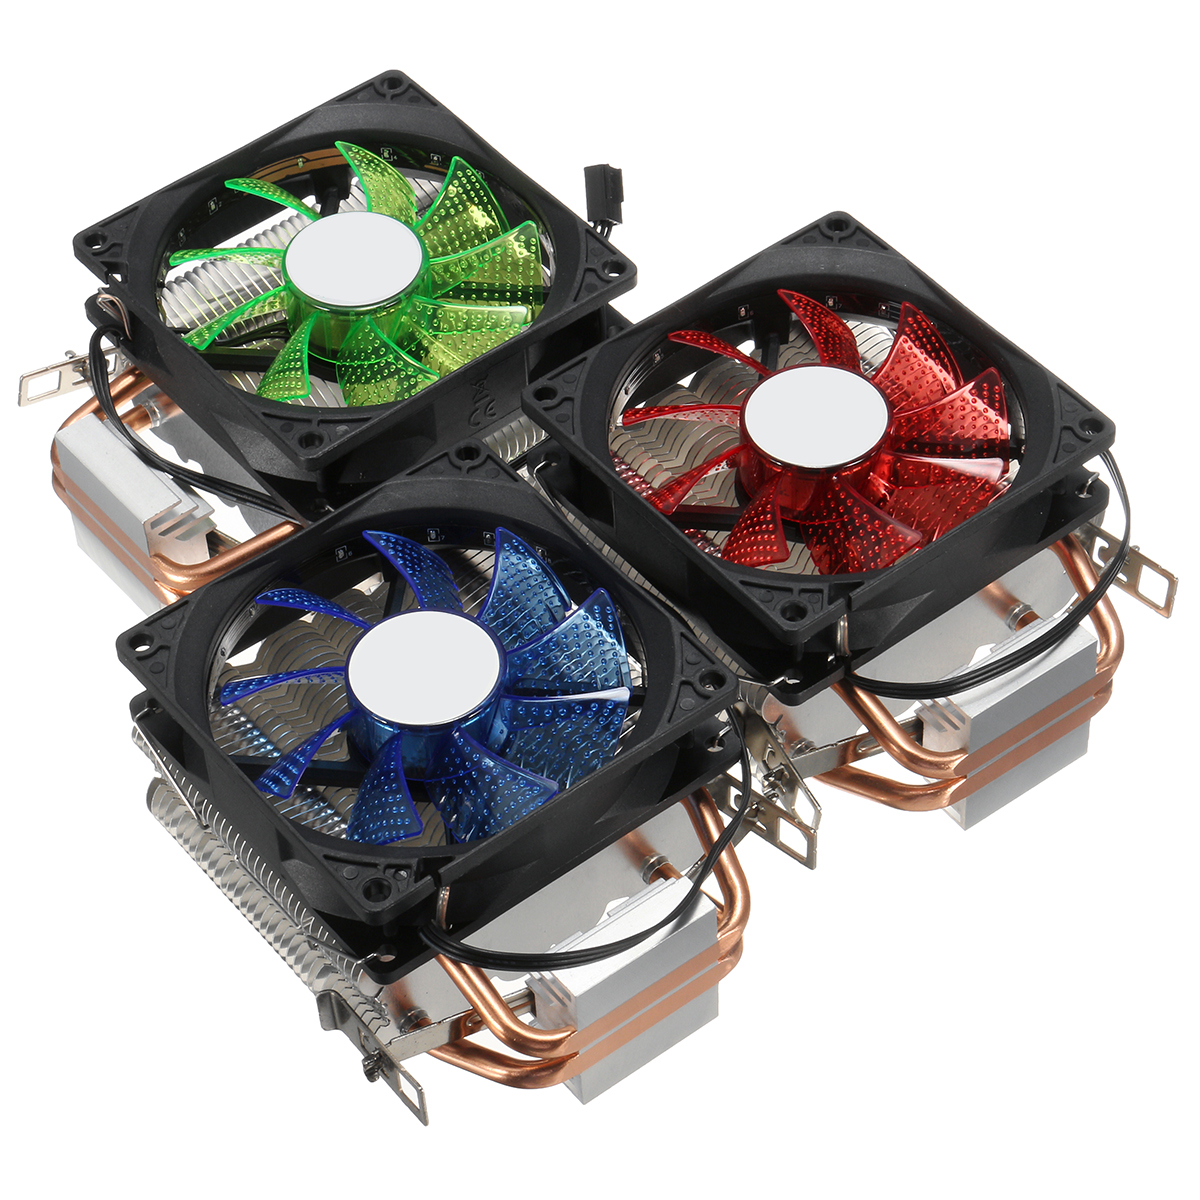 9cm LED 3 Pin CPU Cooling Fan Cooler Heat Sink For Intel LAG/1155/1156 AMD 754/AM2/AM2+AM3/FM1